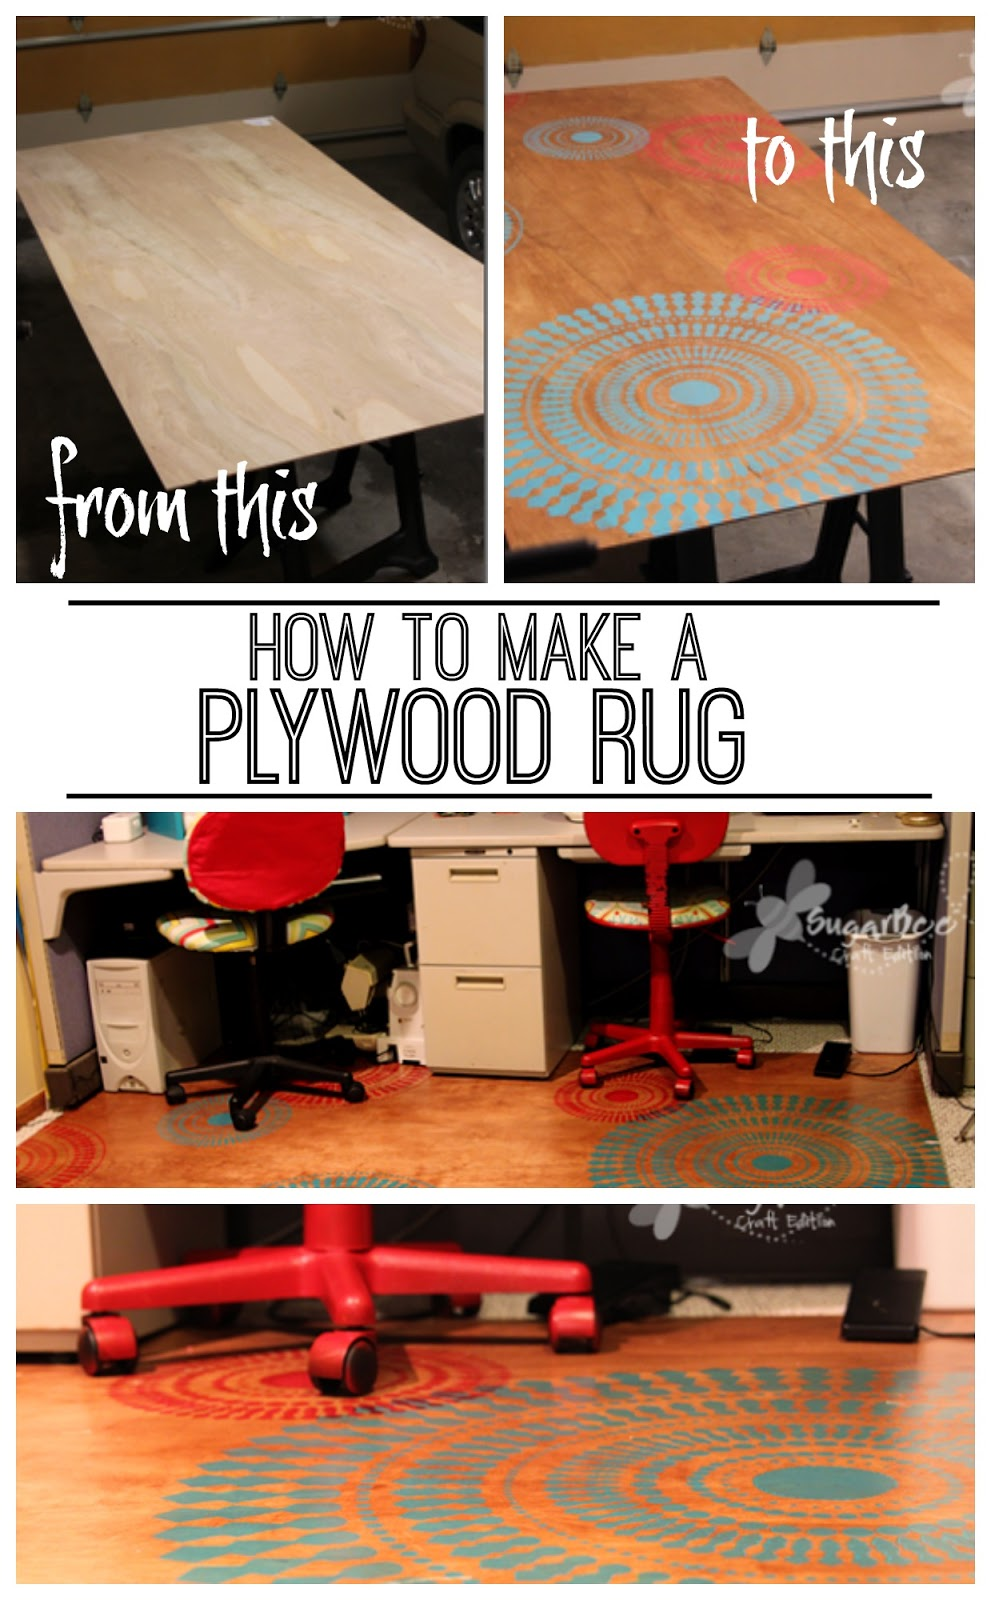 plywood+rug+mat+how+to+tutorial.jpg